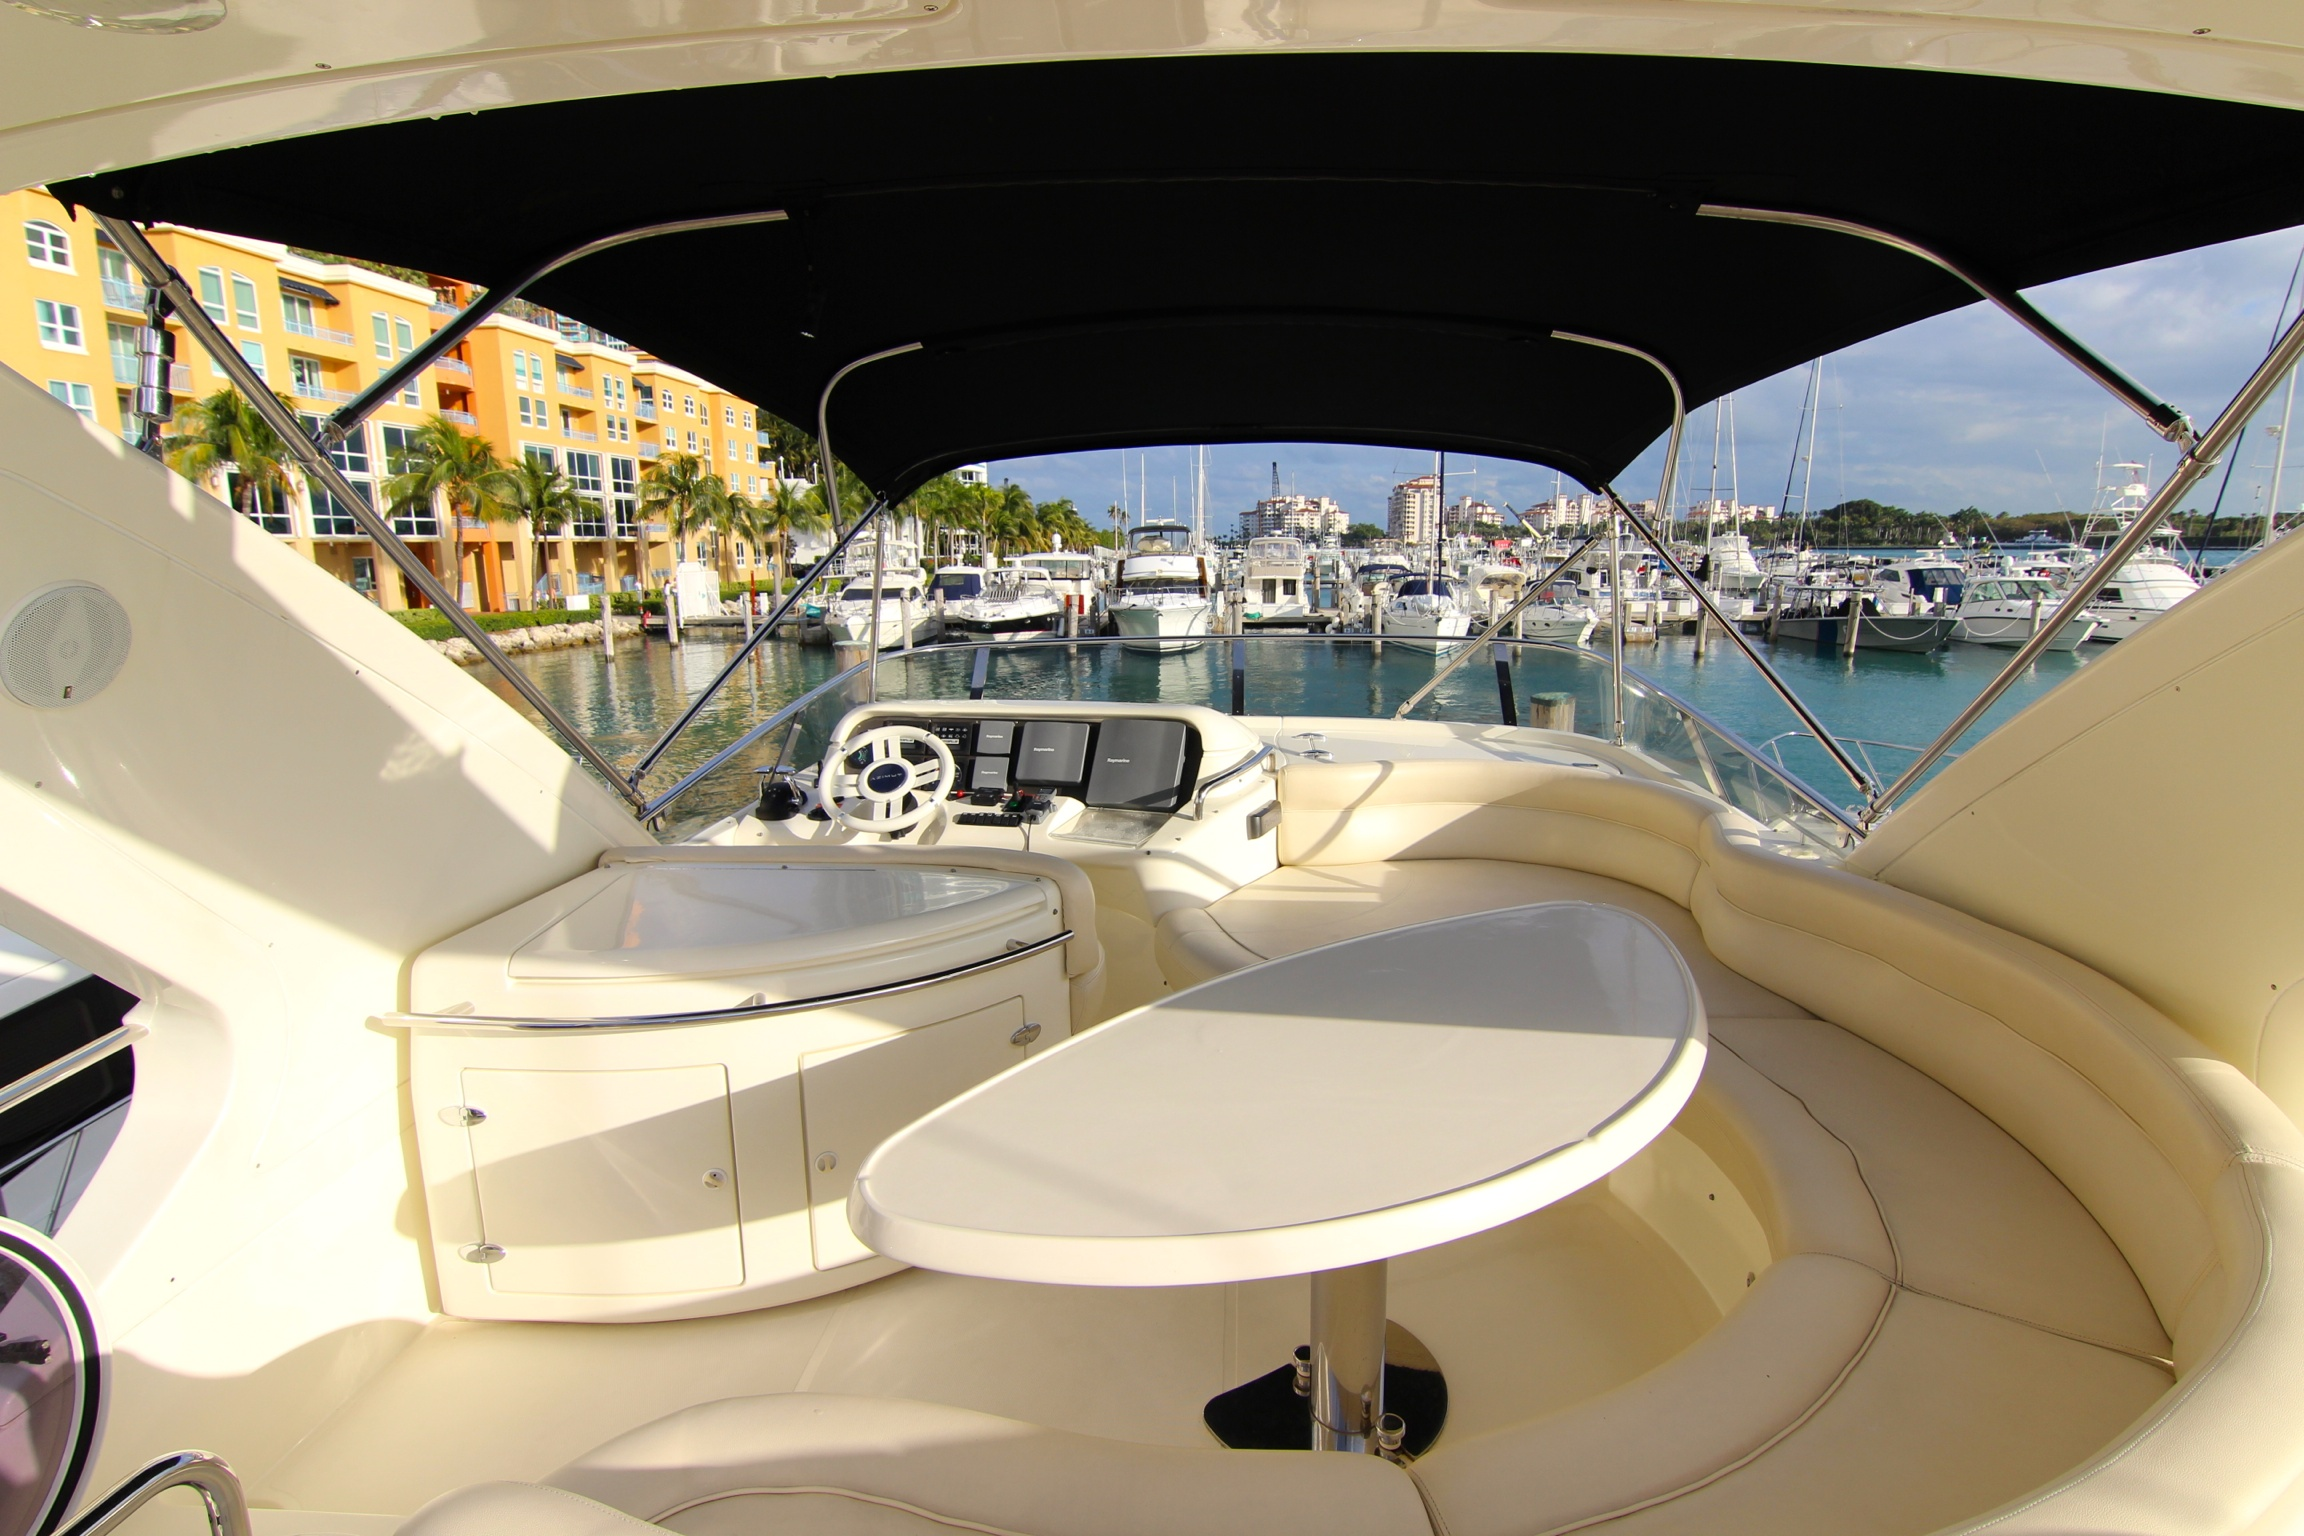 43-foot-yacht-rental-miami